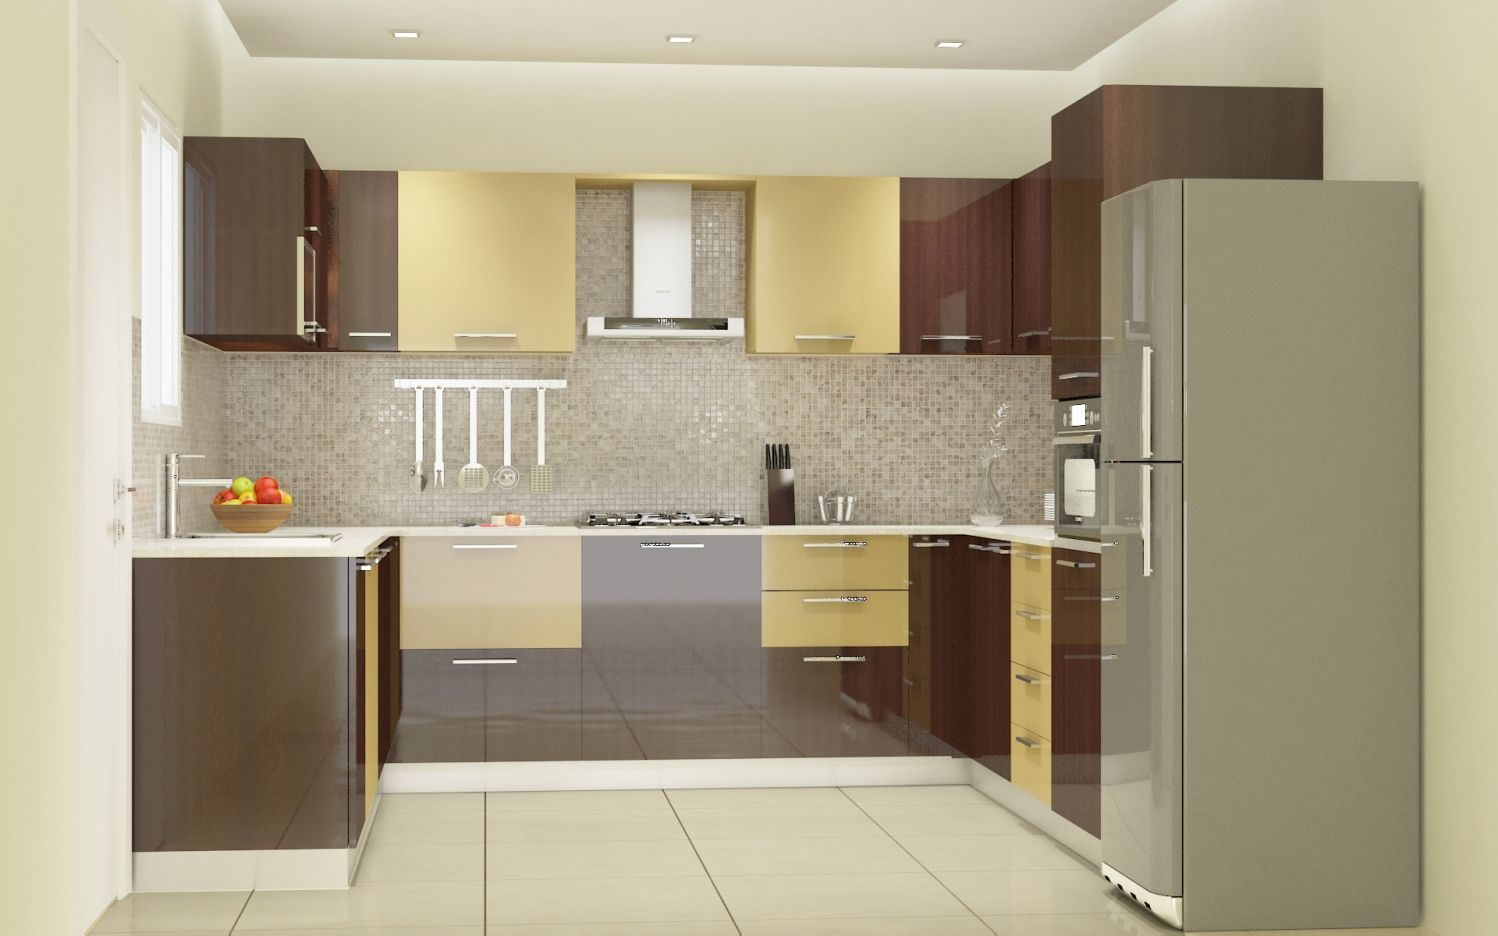 Modular kitchen – Feel the true power of luxury | Kitchens ...